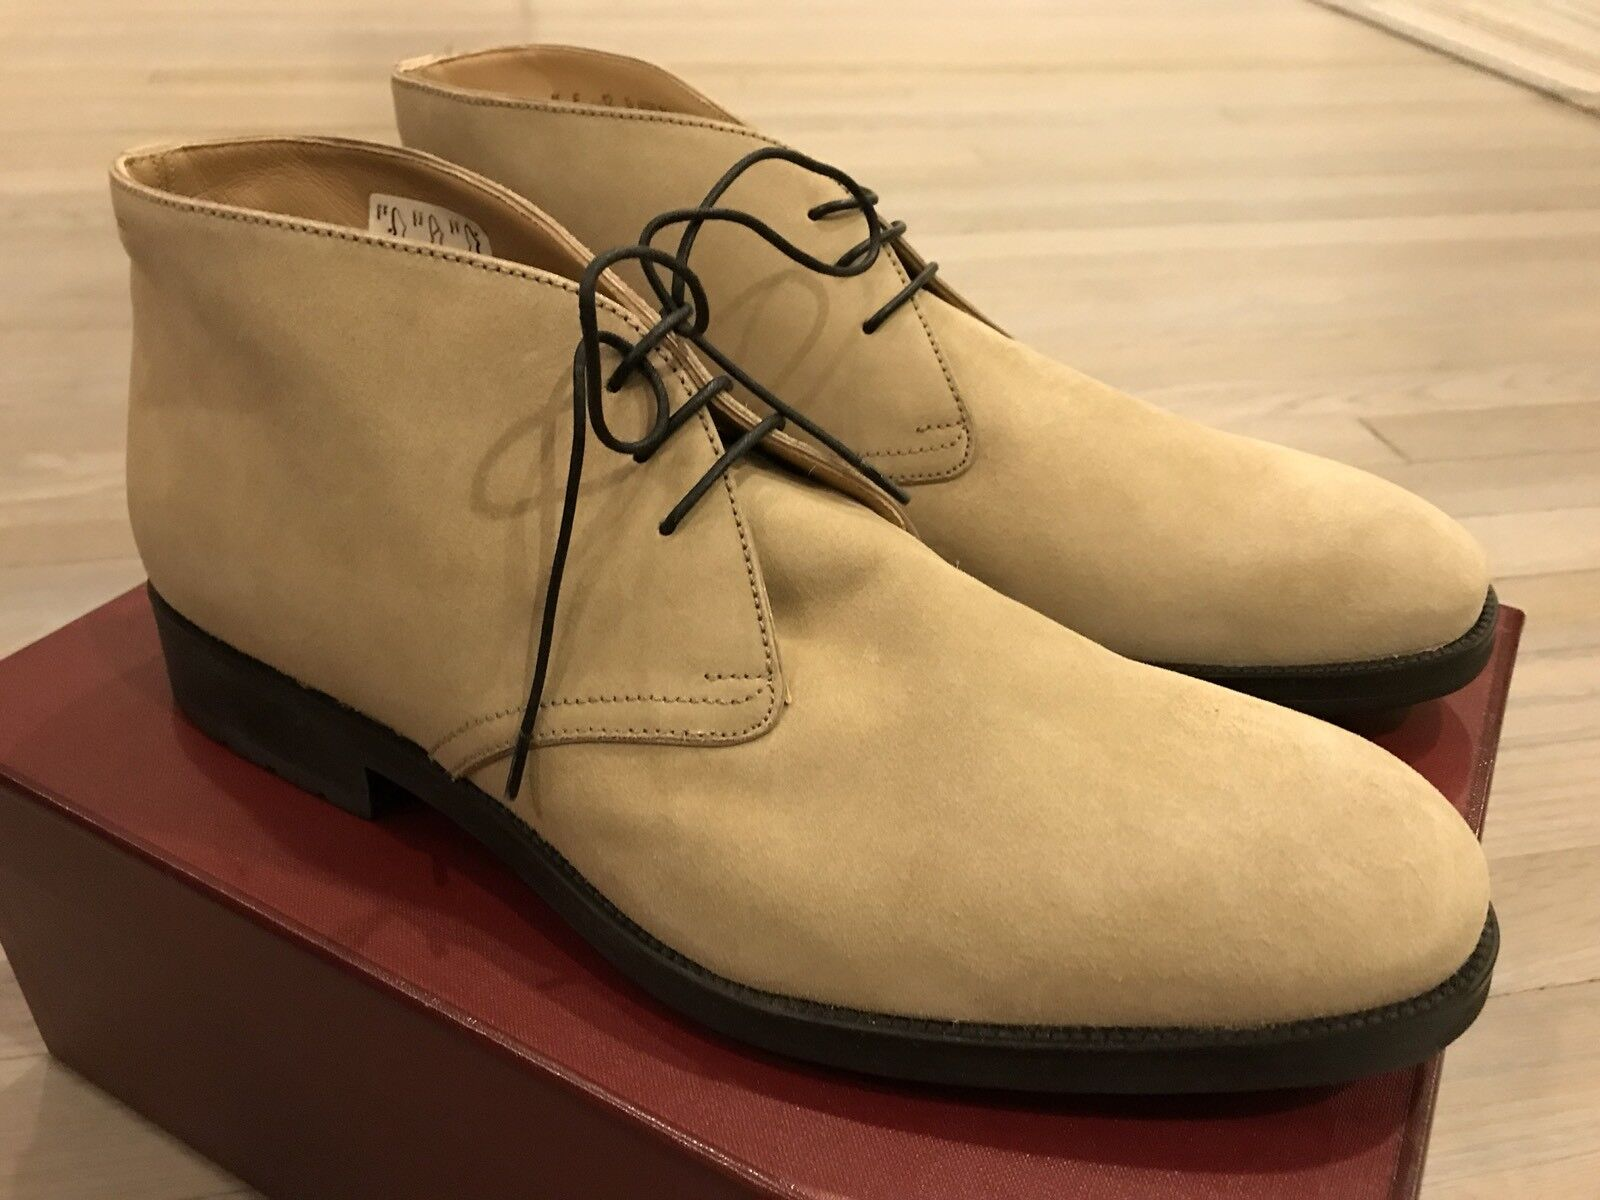 f78a244f58d 750 Bally Robik Beige Suede Ankle Boots Size US 11 Made in Switzerland